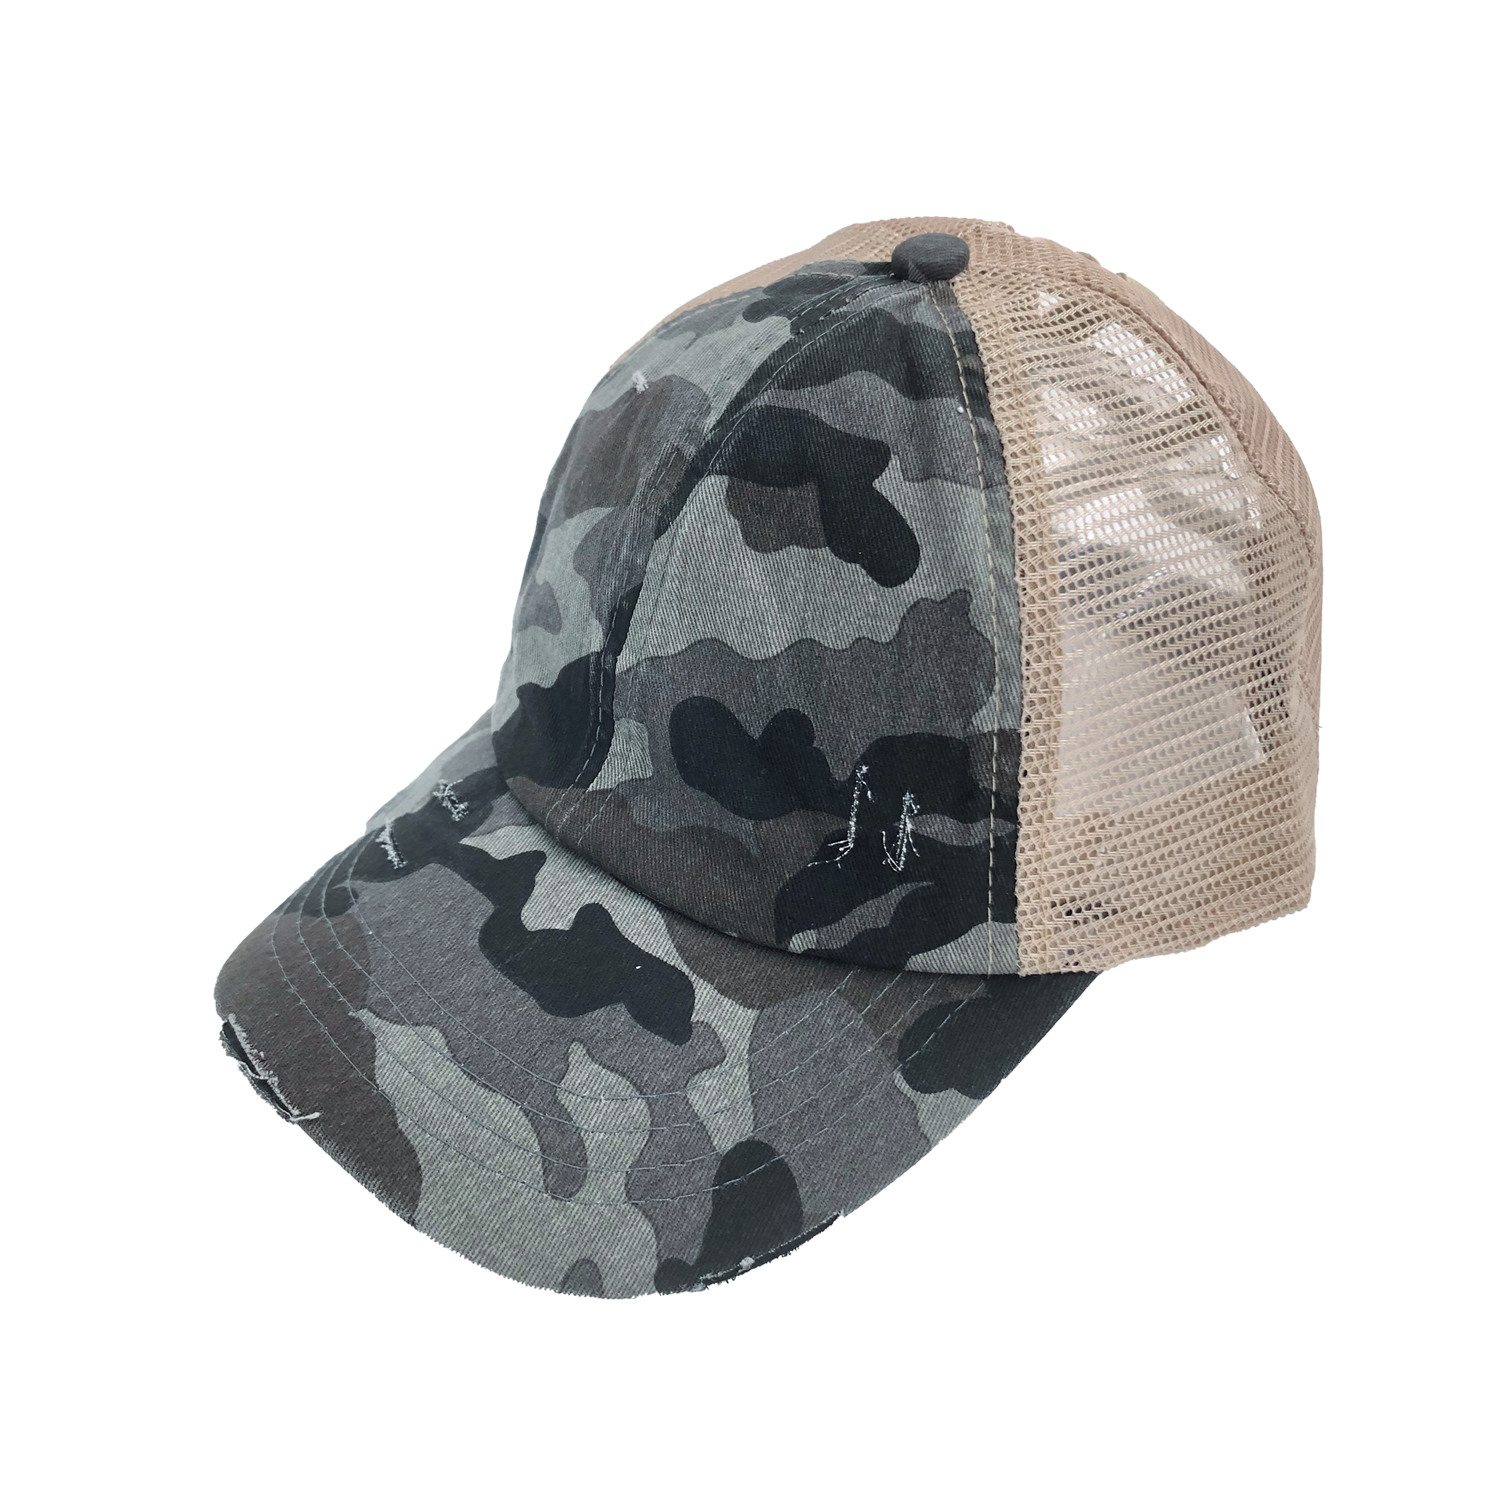 BT-783 C.C Criss Cross Pony Cap GREY CAMO/BEIGE